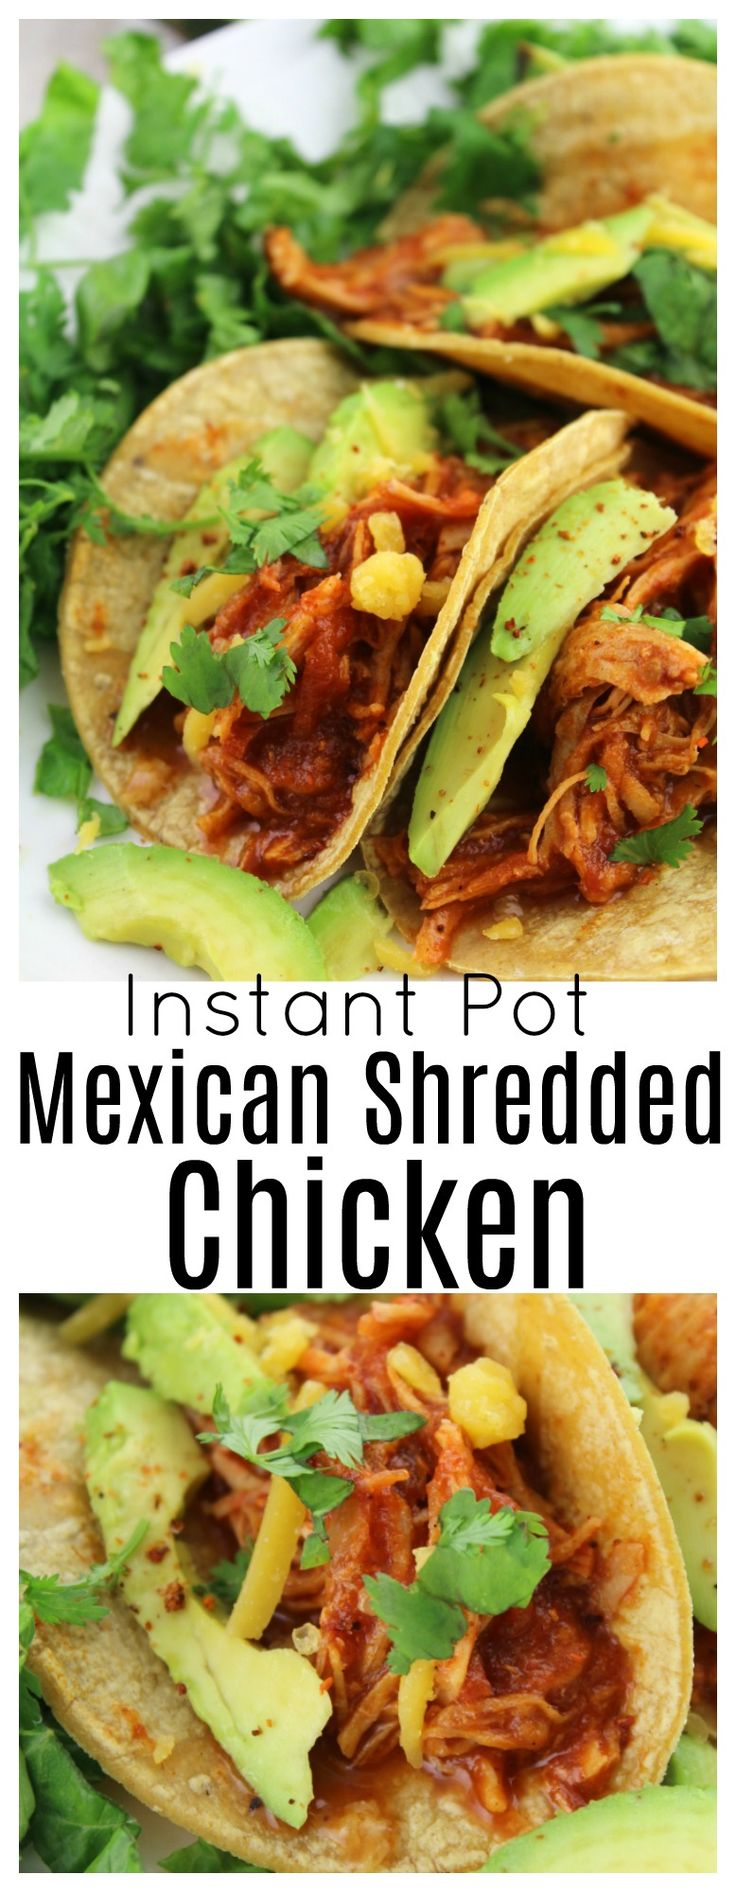 Instant Pot Mexican Shredded Chicken for Tacos, Burritos and Tostadas